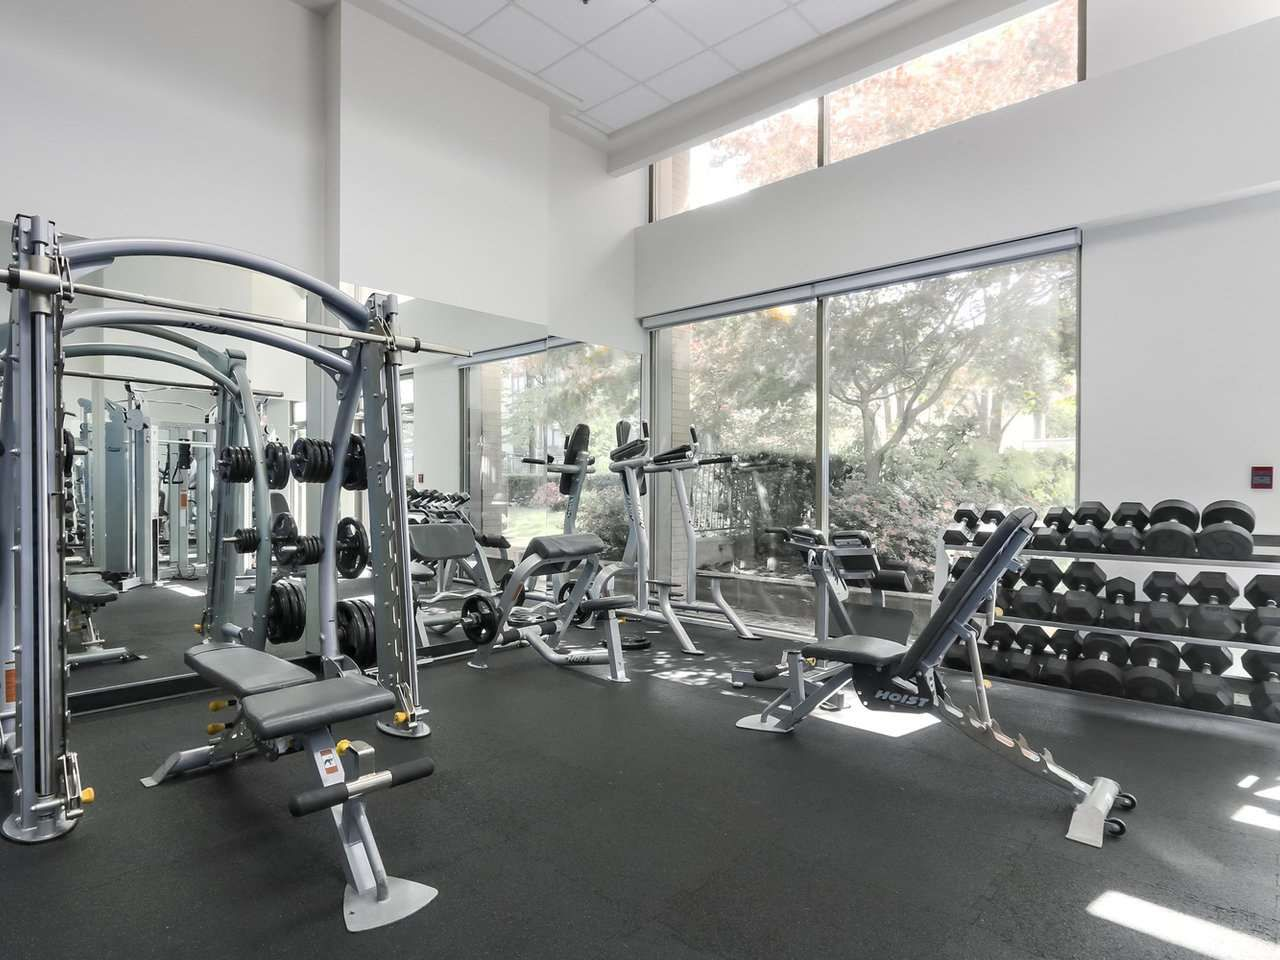 Exercise fitness equipment gym workout equipment for sale